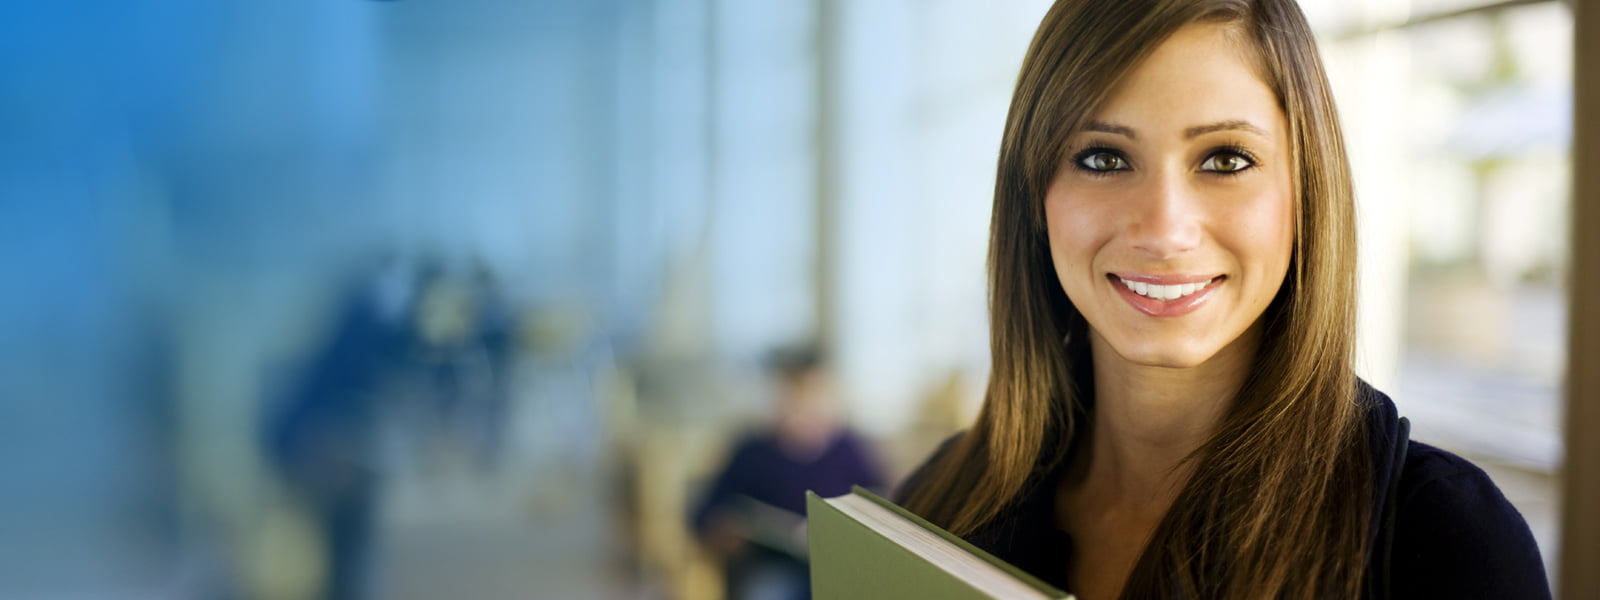 featured_college_female-student_1600x600